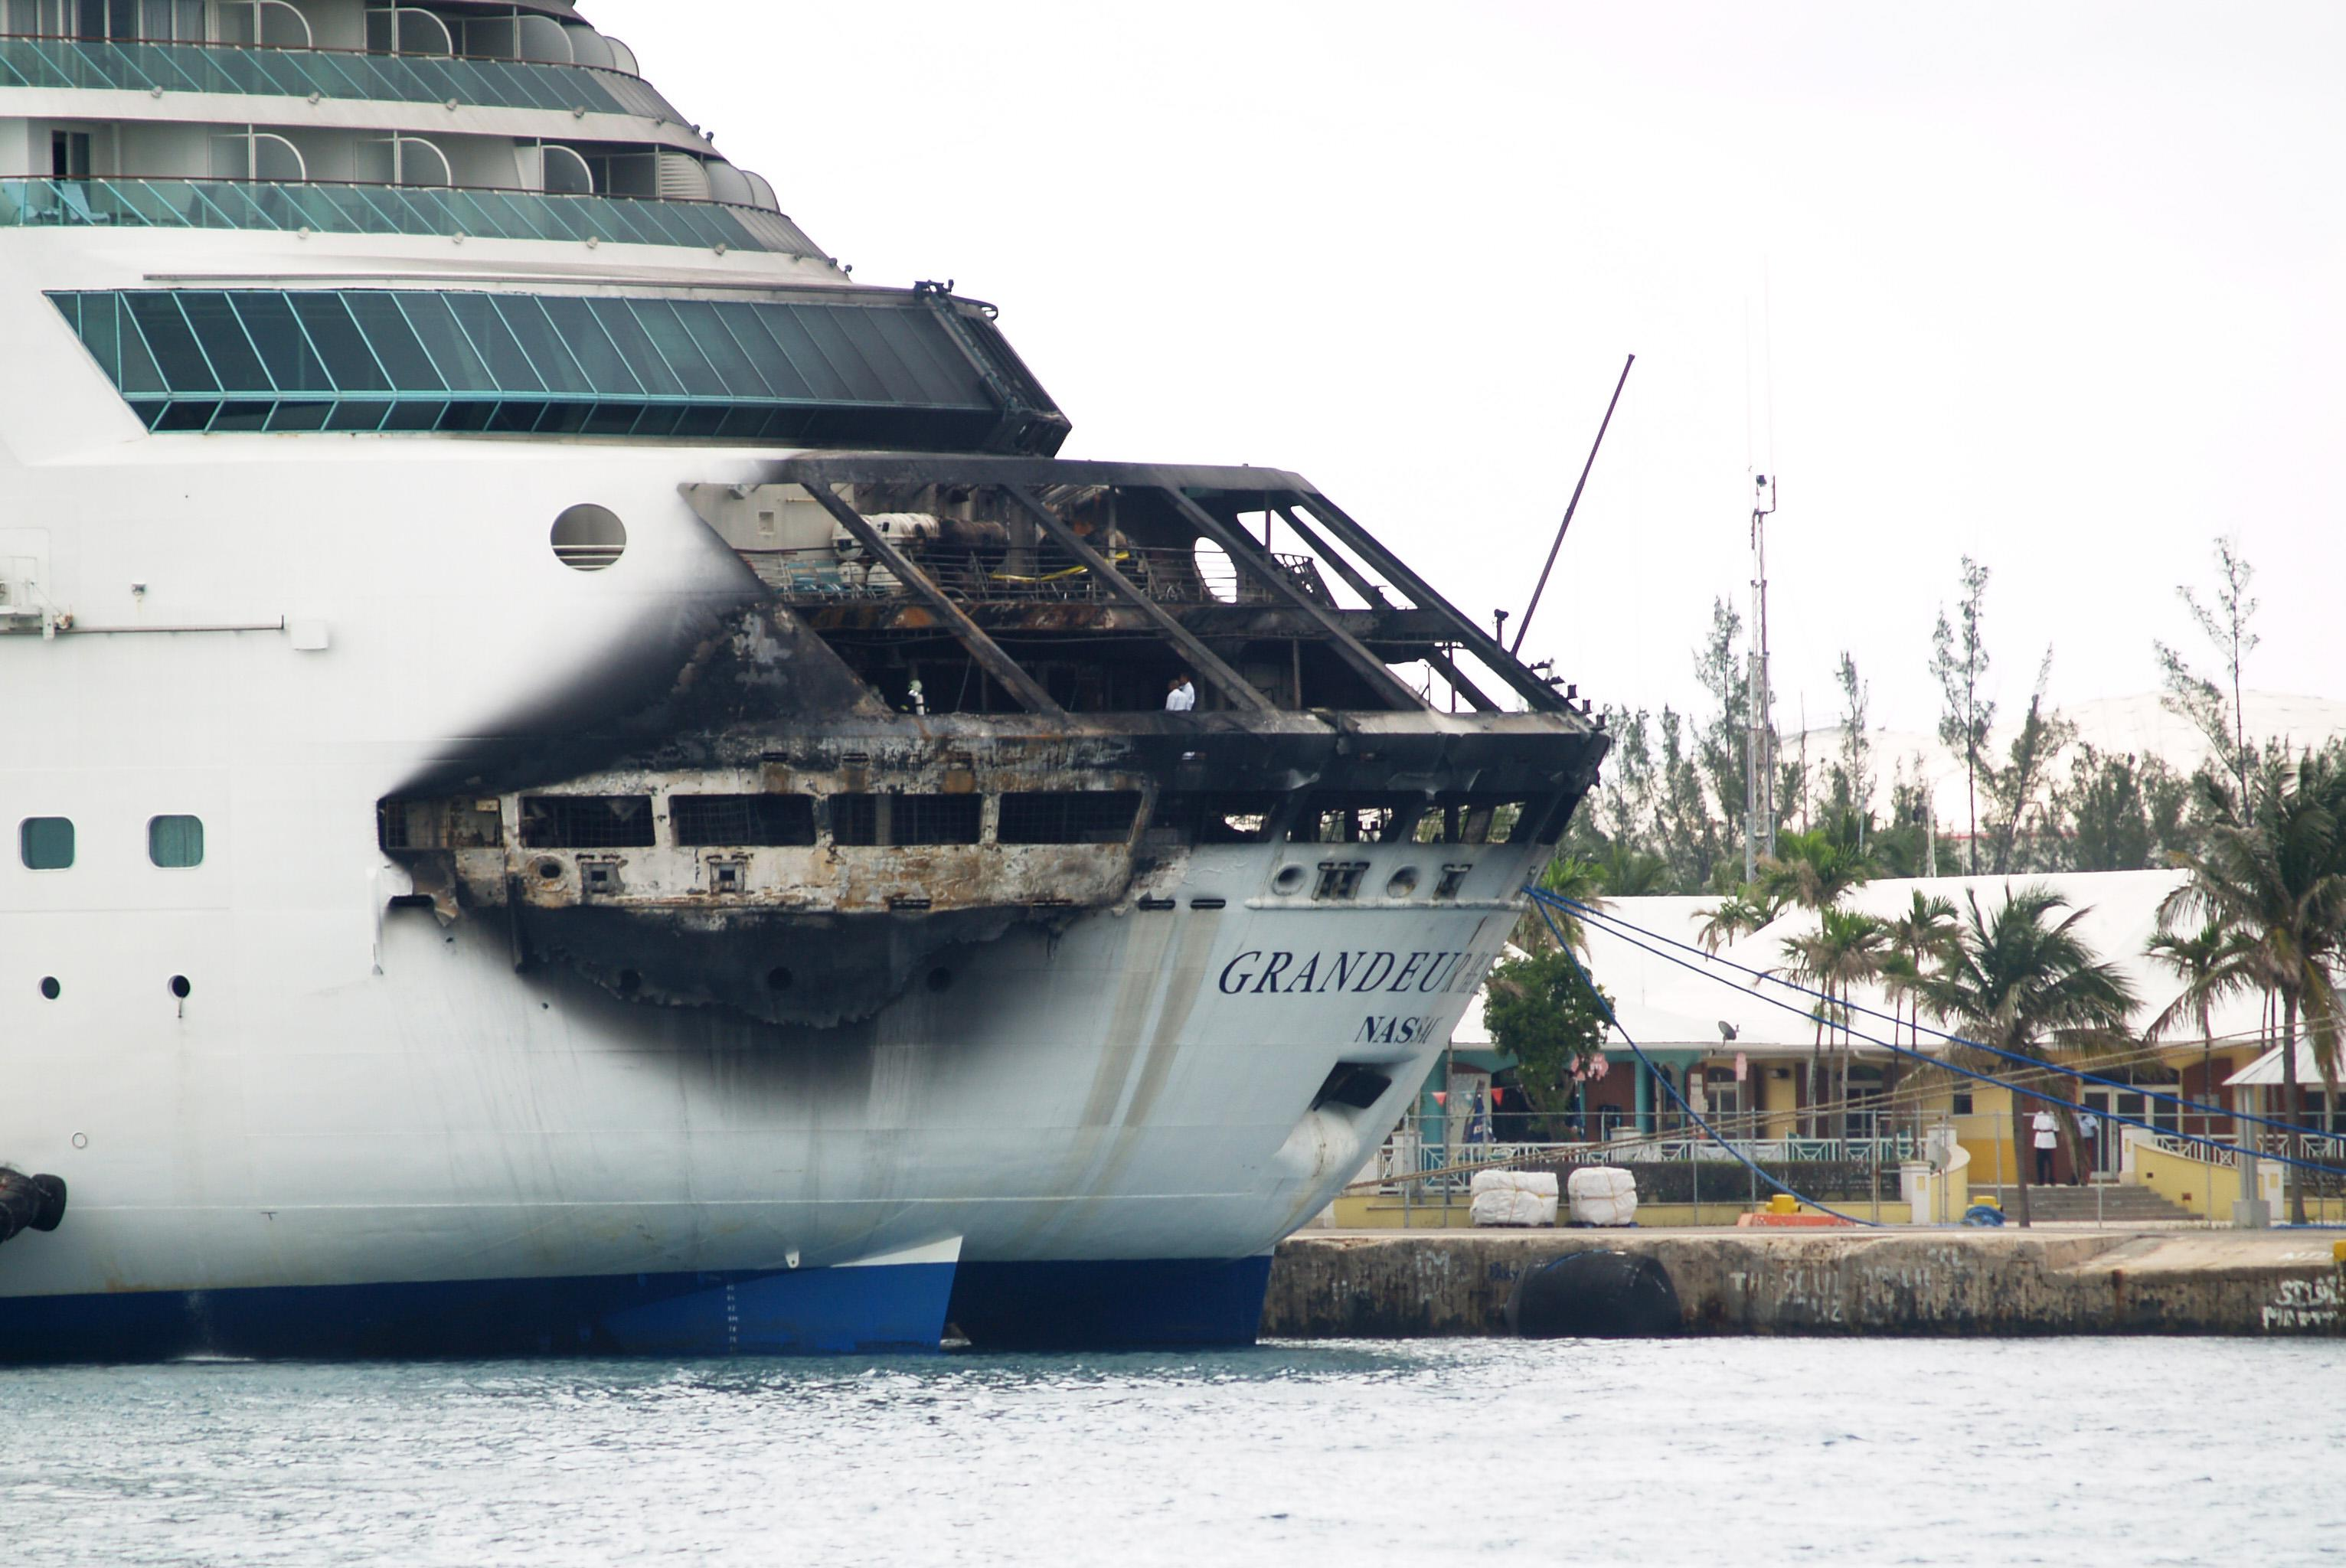 Fire Breaks Out Aboard Royal Caribbean Cruise Ship - Cruise ship caribbean